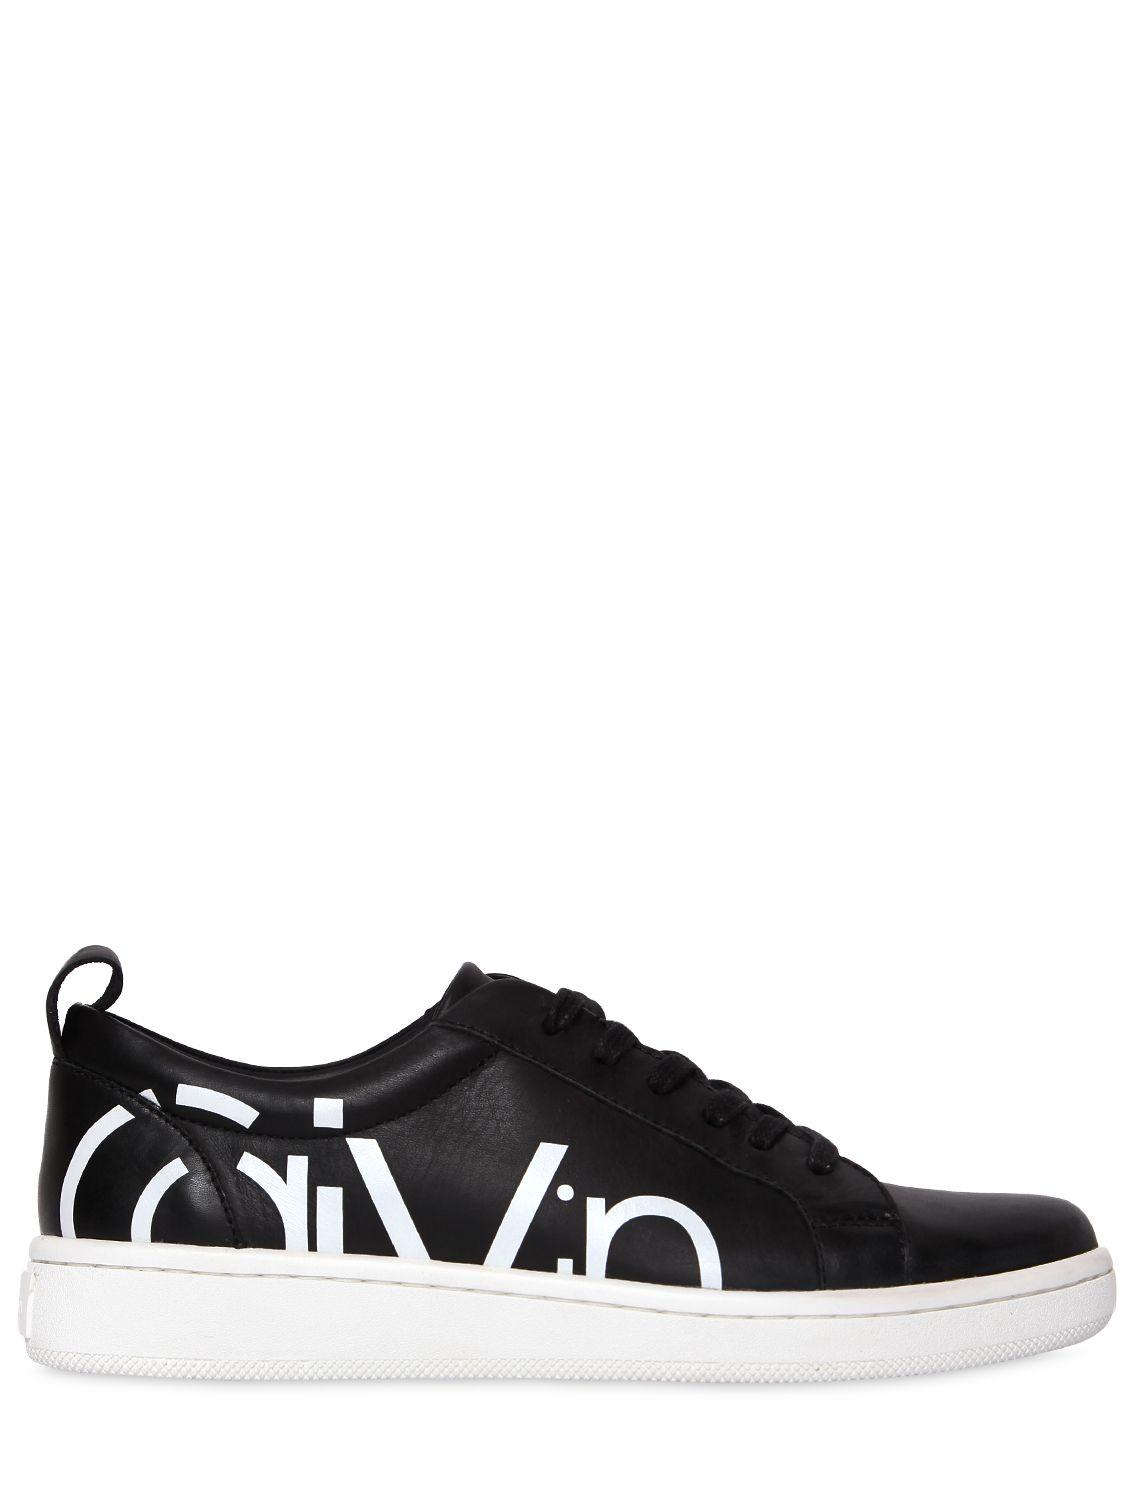 calvin klein jeans 20mm danya leather sneakers in black. Black Bedroom Furniture Sets. Home Design Ideas